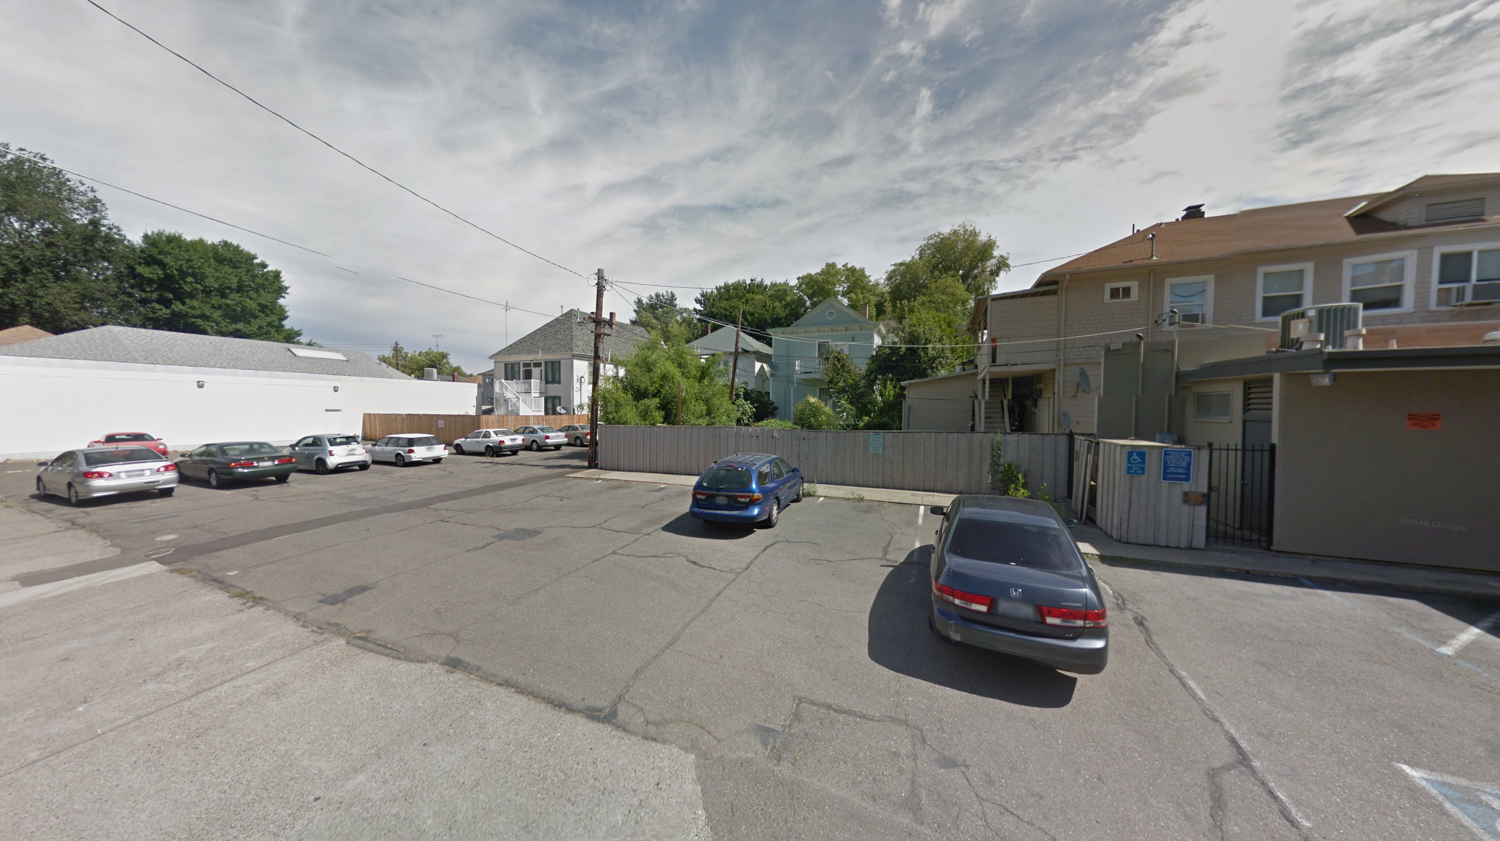 Tomato Alley infill in its existing condition, image via Google Street View